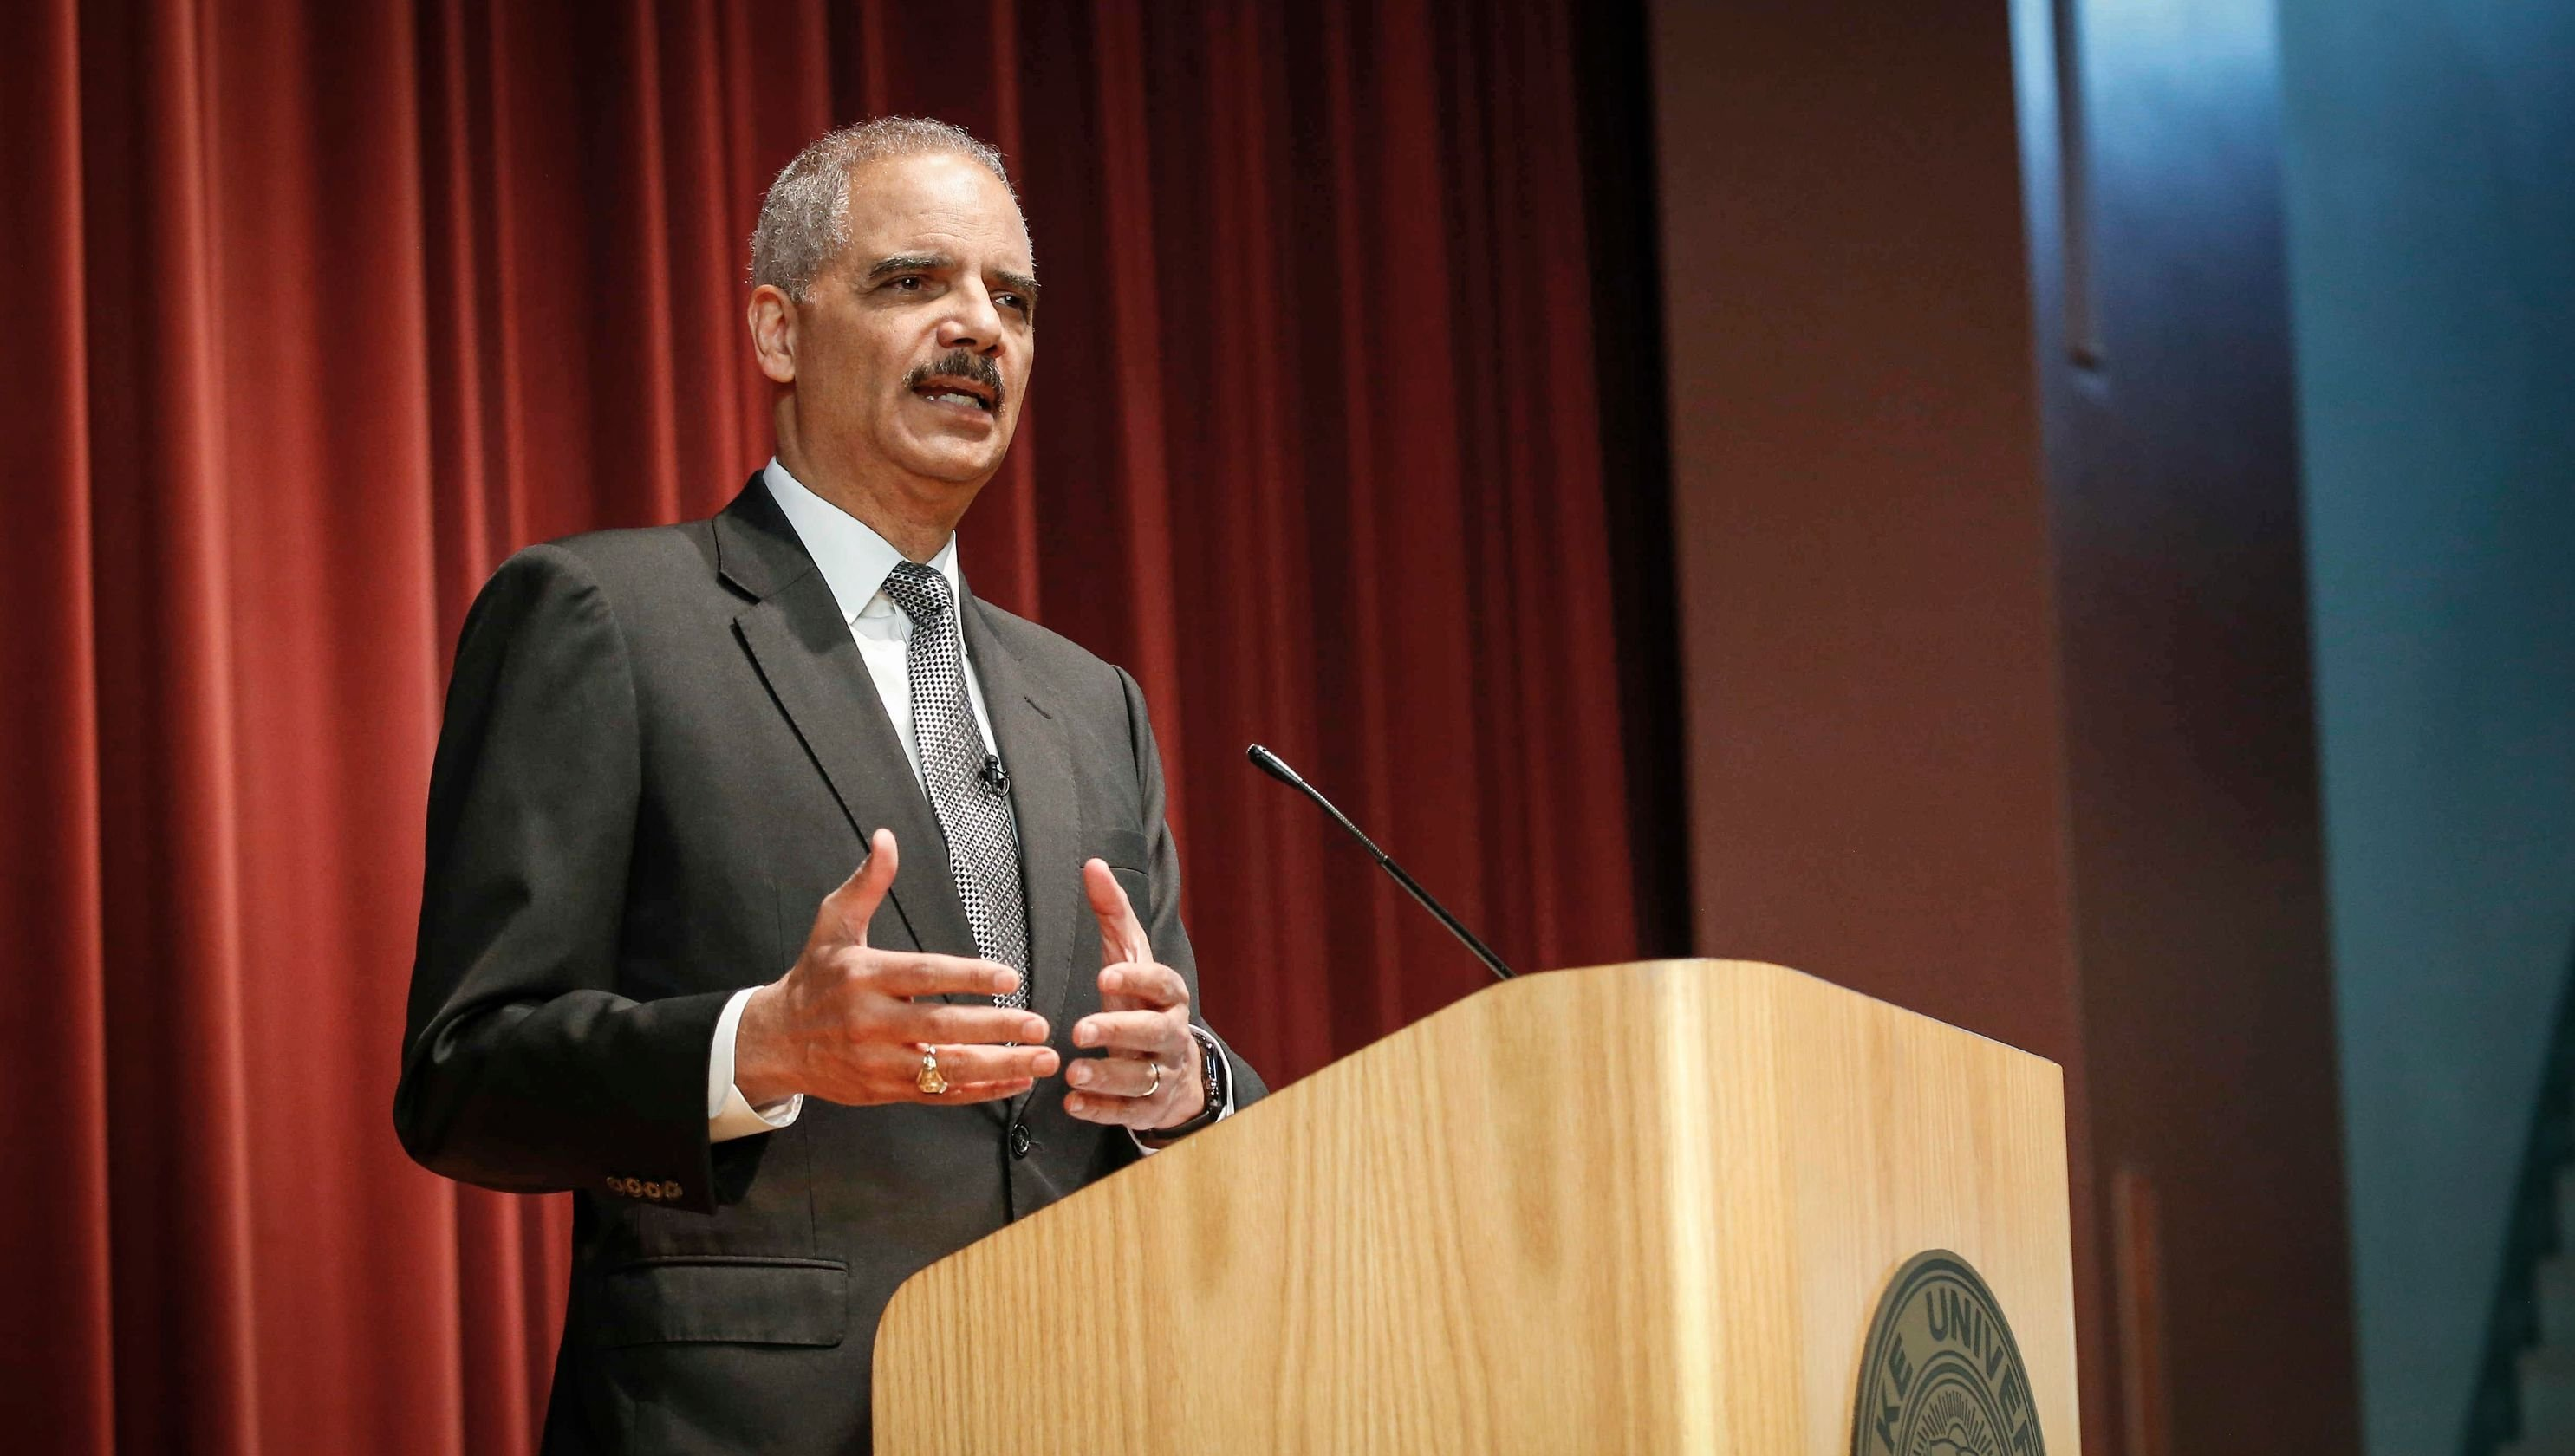 Former AG Eric Holder visits Des Moines, Iowa and told law students he would vote for marijuana legalization if he were a member of Congress. Holder also implied that he lobbied unsuccessfully internally to get the Obama administration to reschedule cannabis.